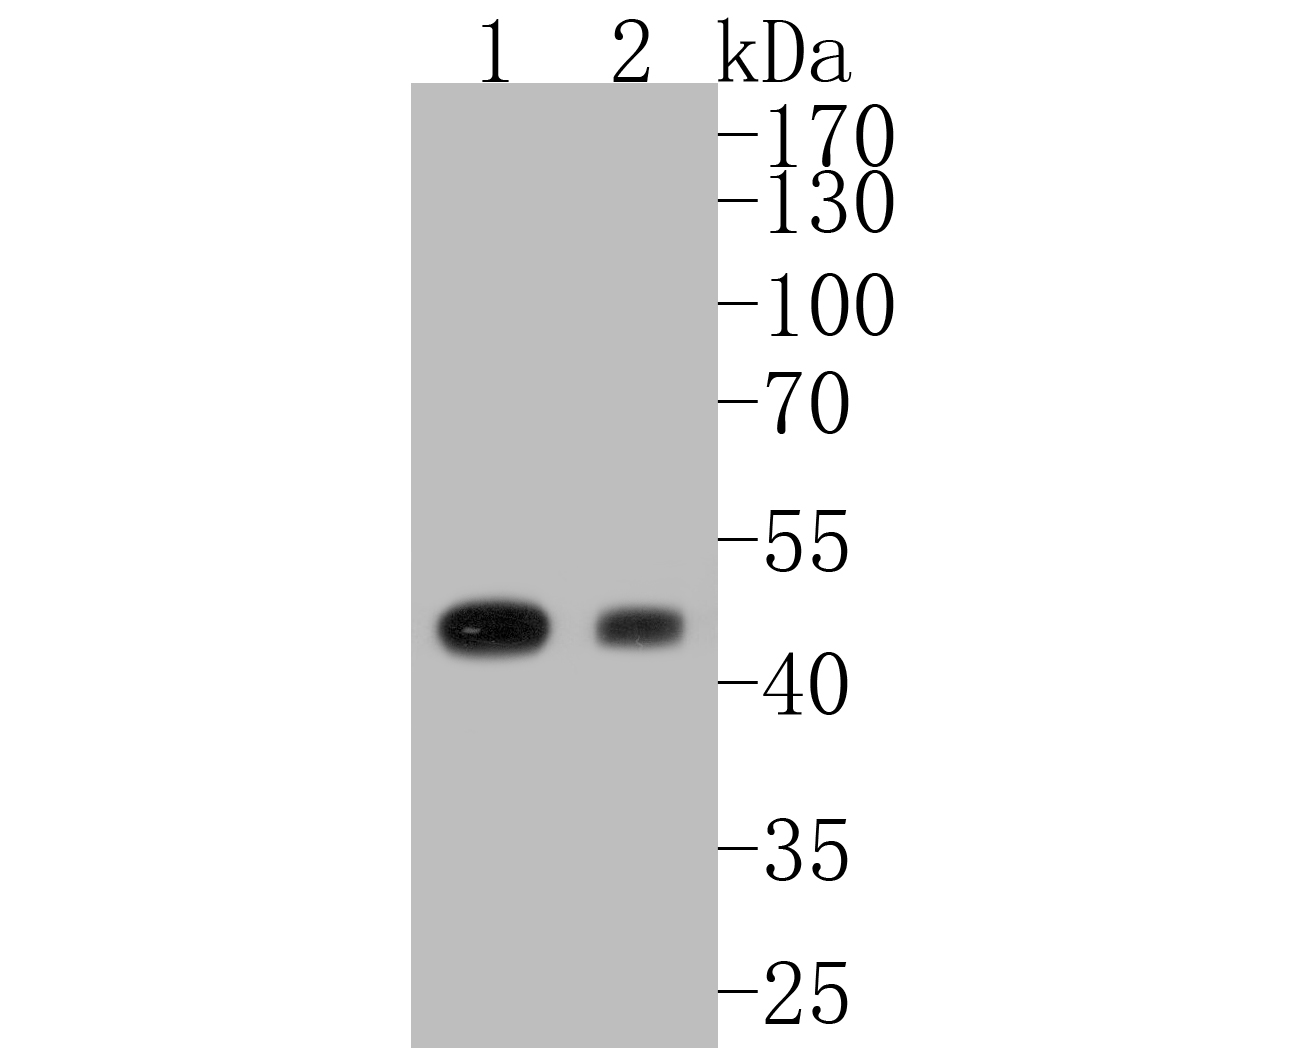 Western blot analysis of Glutamine Synthetase on different lysates. Proteins were transferred to a PVDF membrane and blocked with 5% BSA in PBS for 1 hour at room temperature. The primary antibody (EM1902-39, 1/500) was used in 5% BSA at room temperature for 2 hours. Goat Anti-Mouse IgG - HRP Secondary Antibody (HA1006) at 1:5,000 dilution was used for 1 hour at room temperature.<br /> Positive control: <br /> Lane 1: SK-Br-3 cell lysate<br /> Lane 2: 293 cell lysate